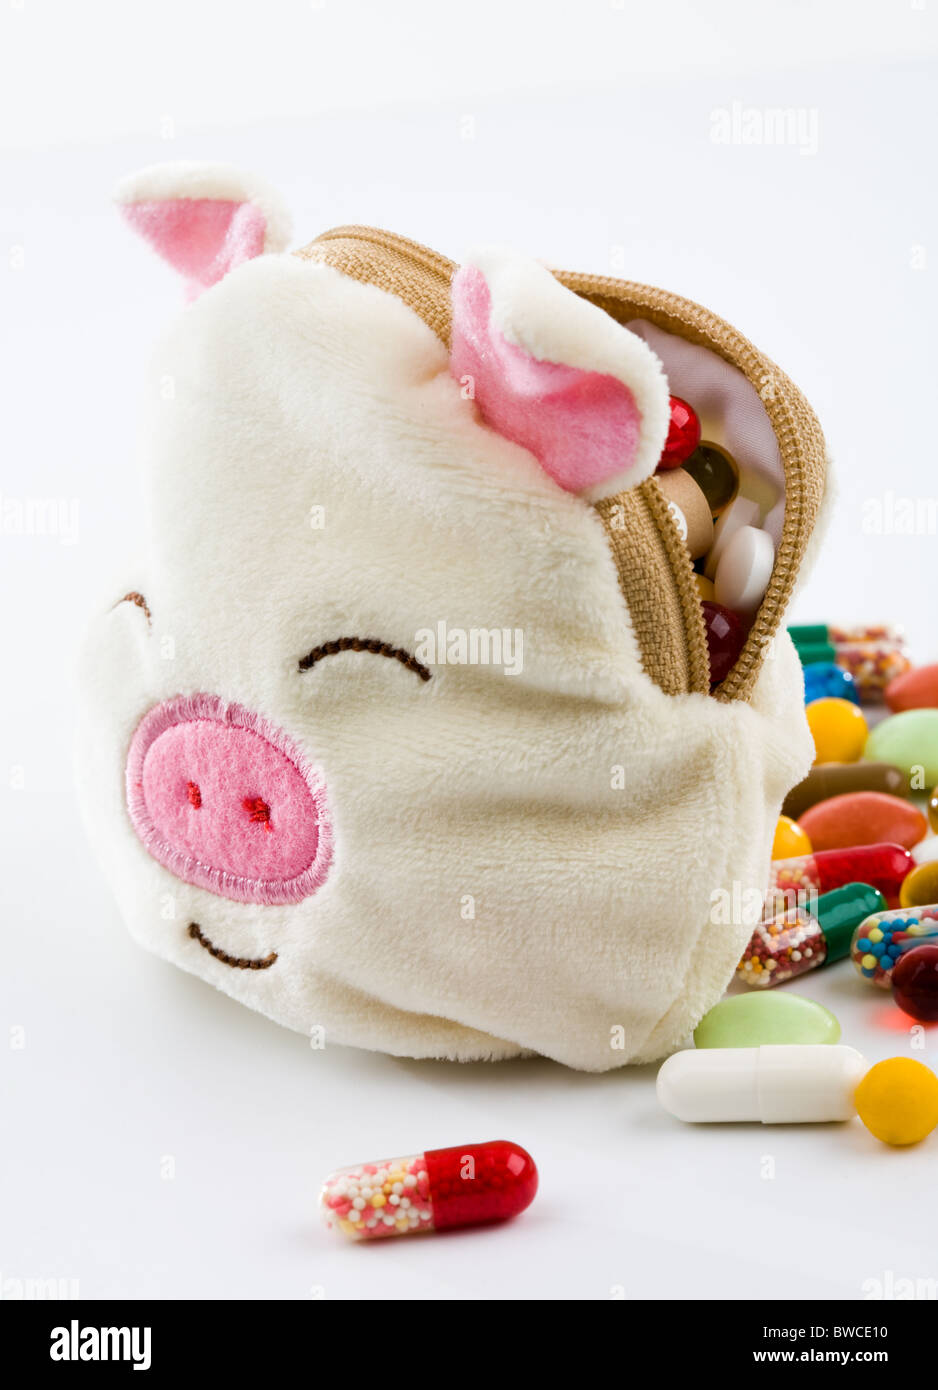 Conceptual image of a soft toy pig filled with pills and capsules symbolizing remedy of swine influenza - Stock Image